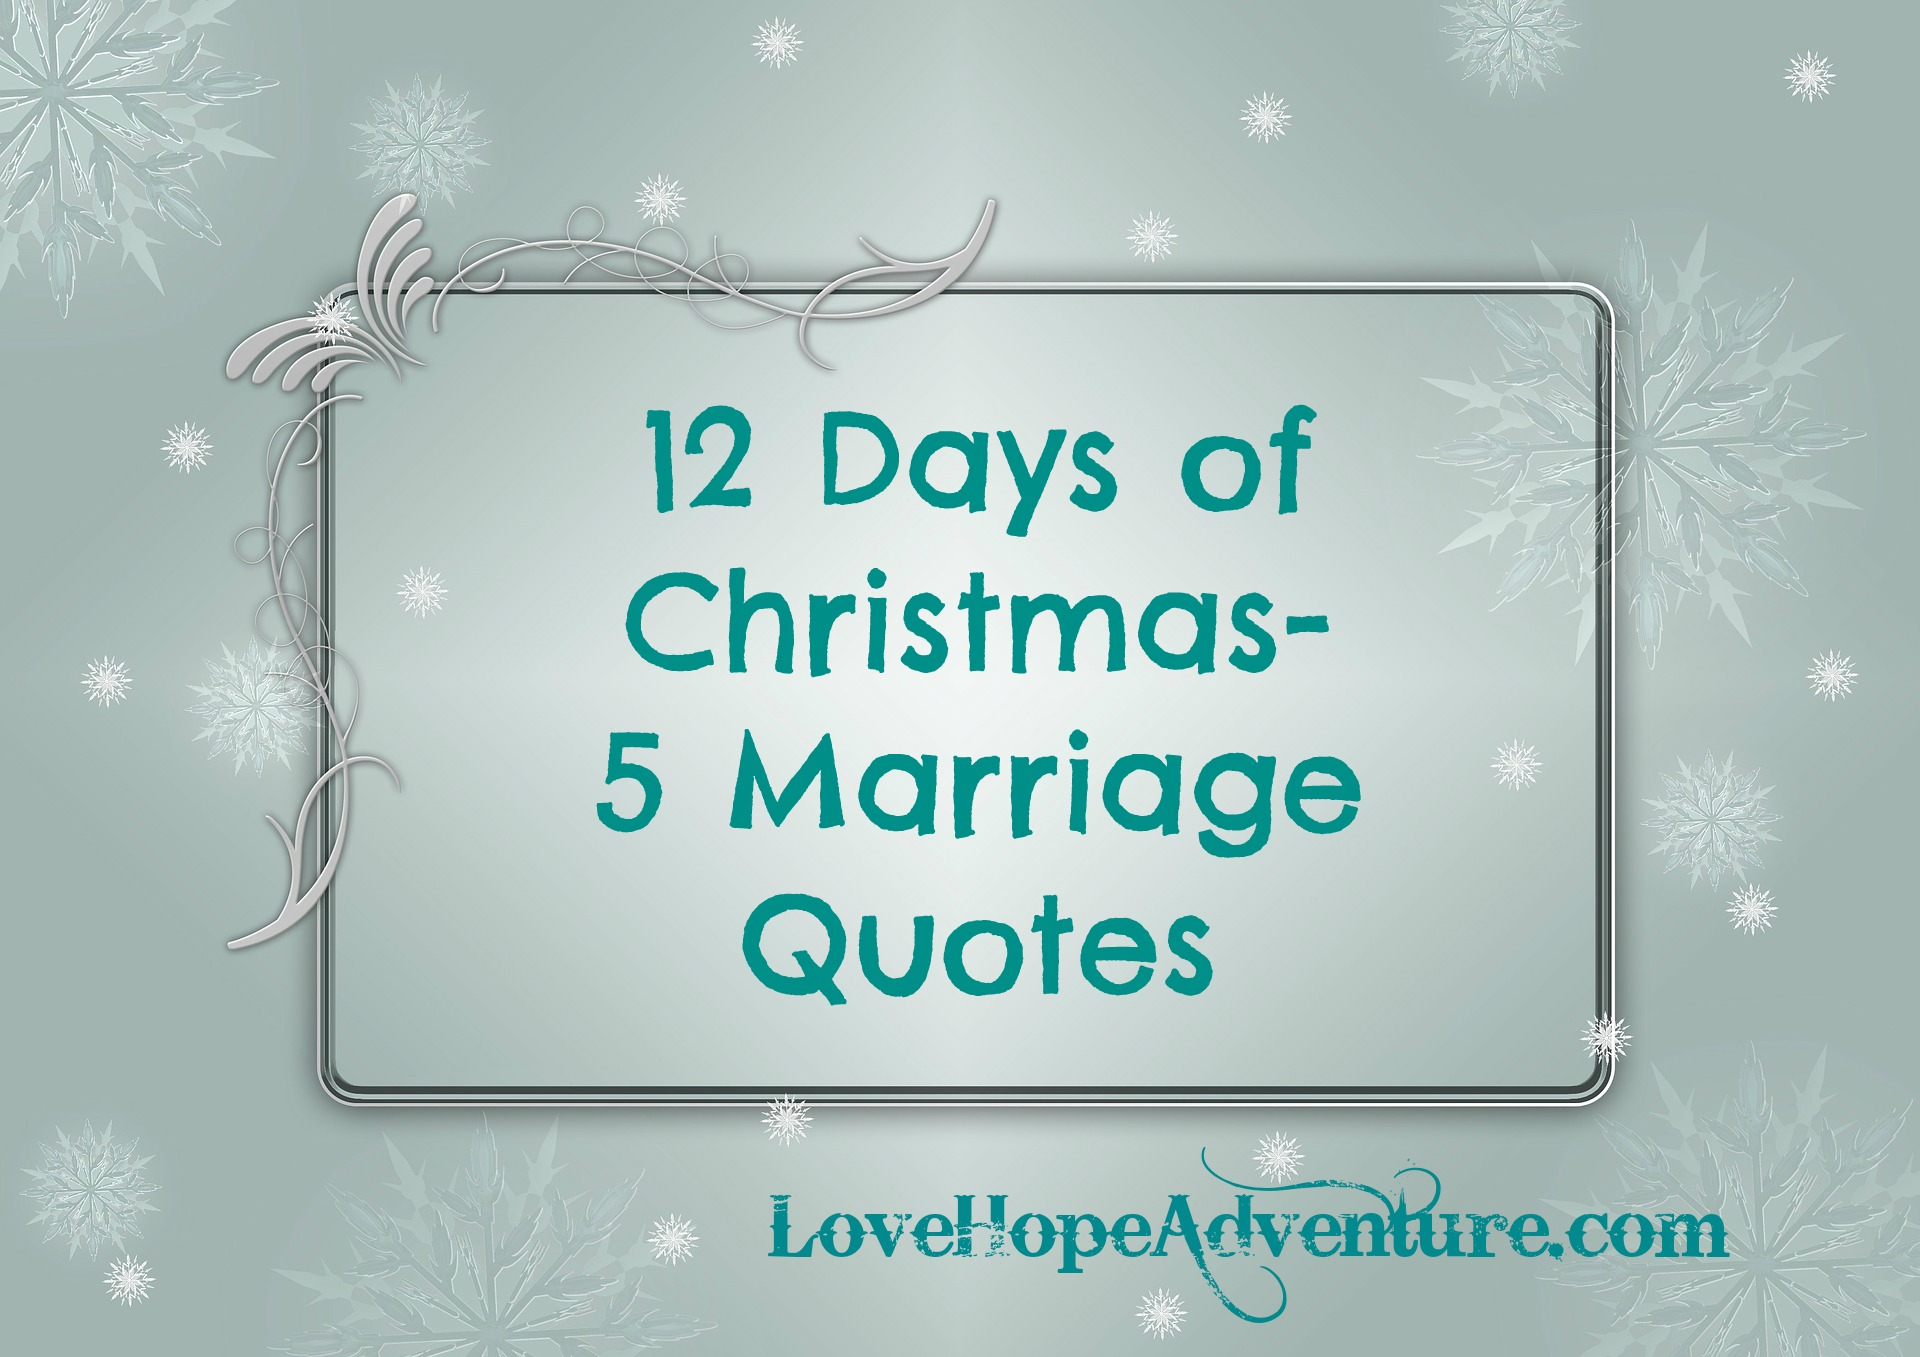 12 Days of Christmas 5 Marriage Quotes